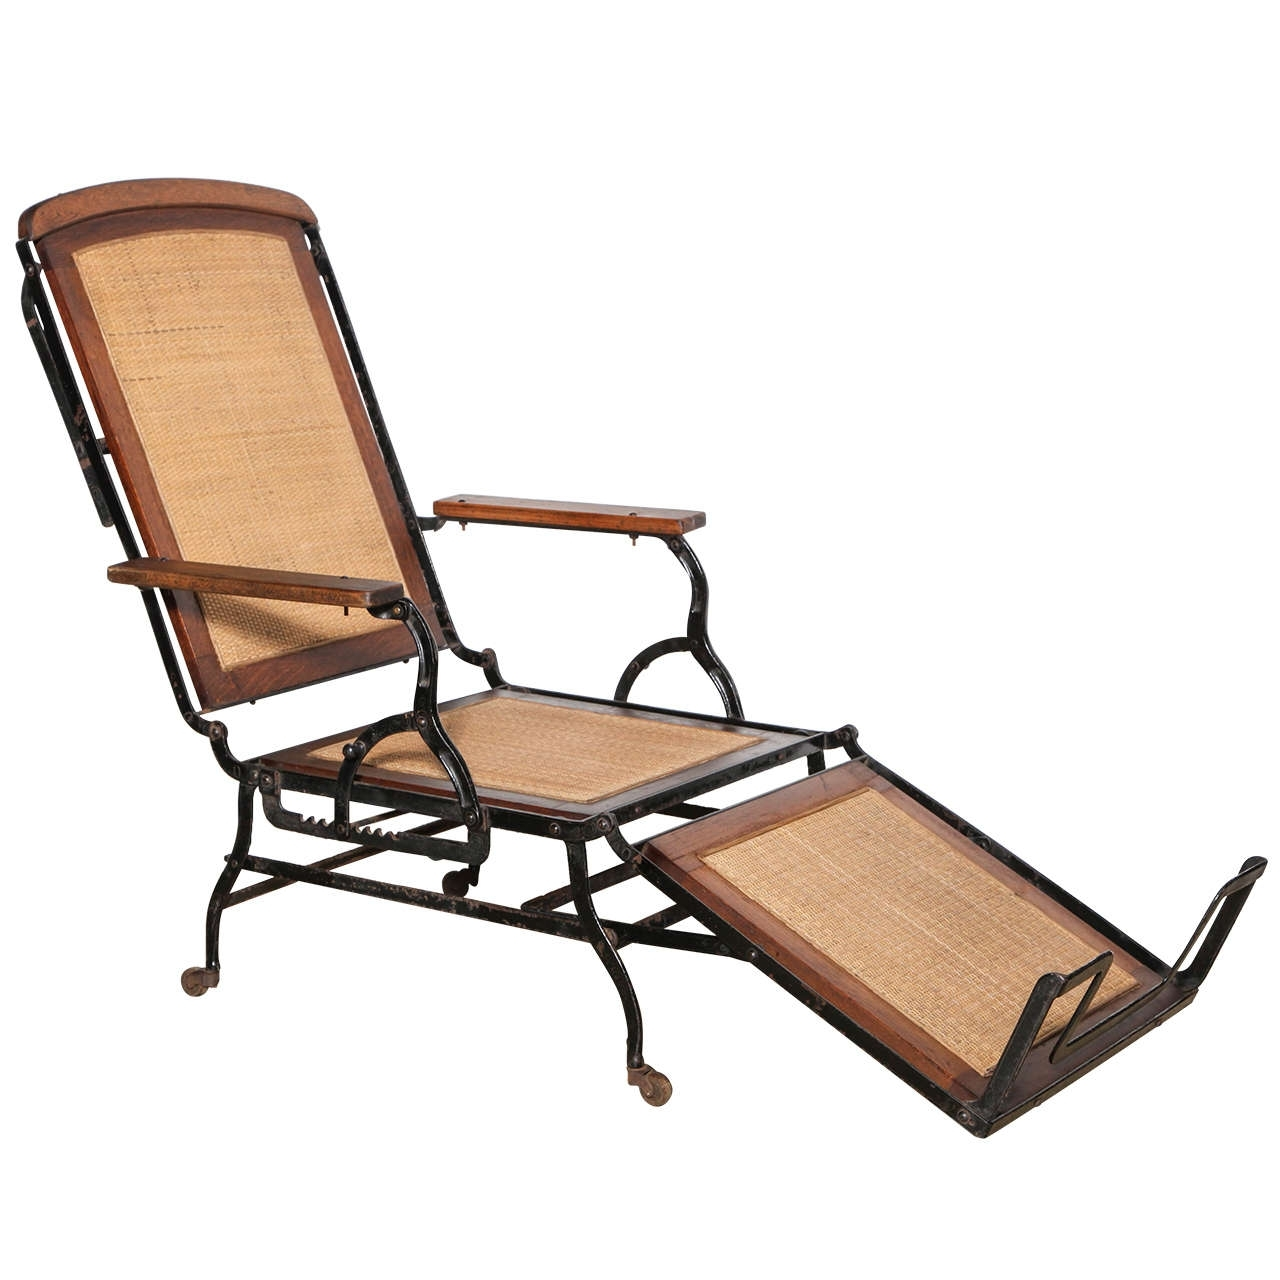 Current Chaise Lounge Chairs Under $200 Intended For Cast Iron Chaise Lounge – Chiefkessler (View 15 of 15)